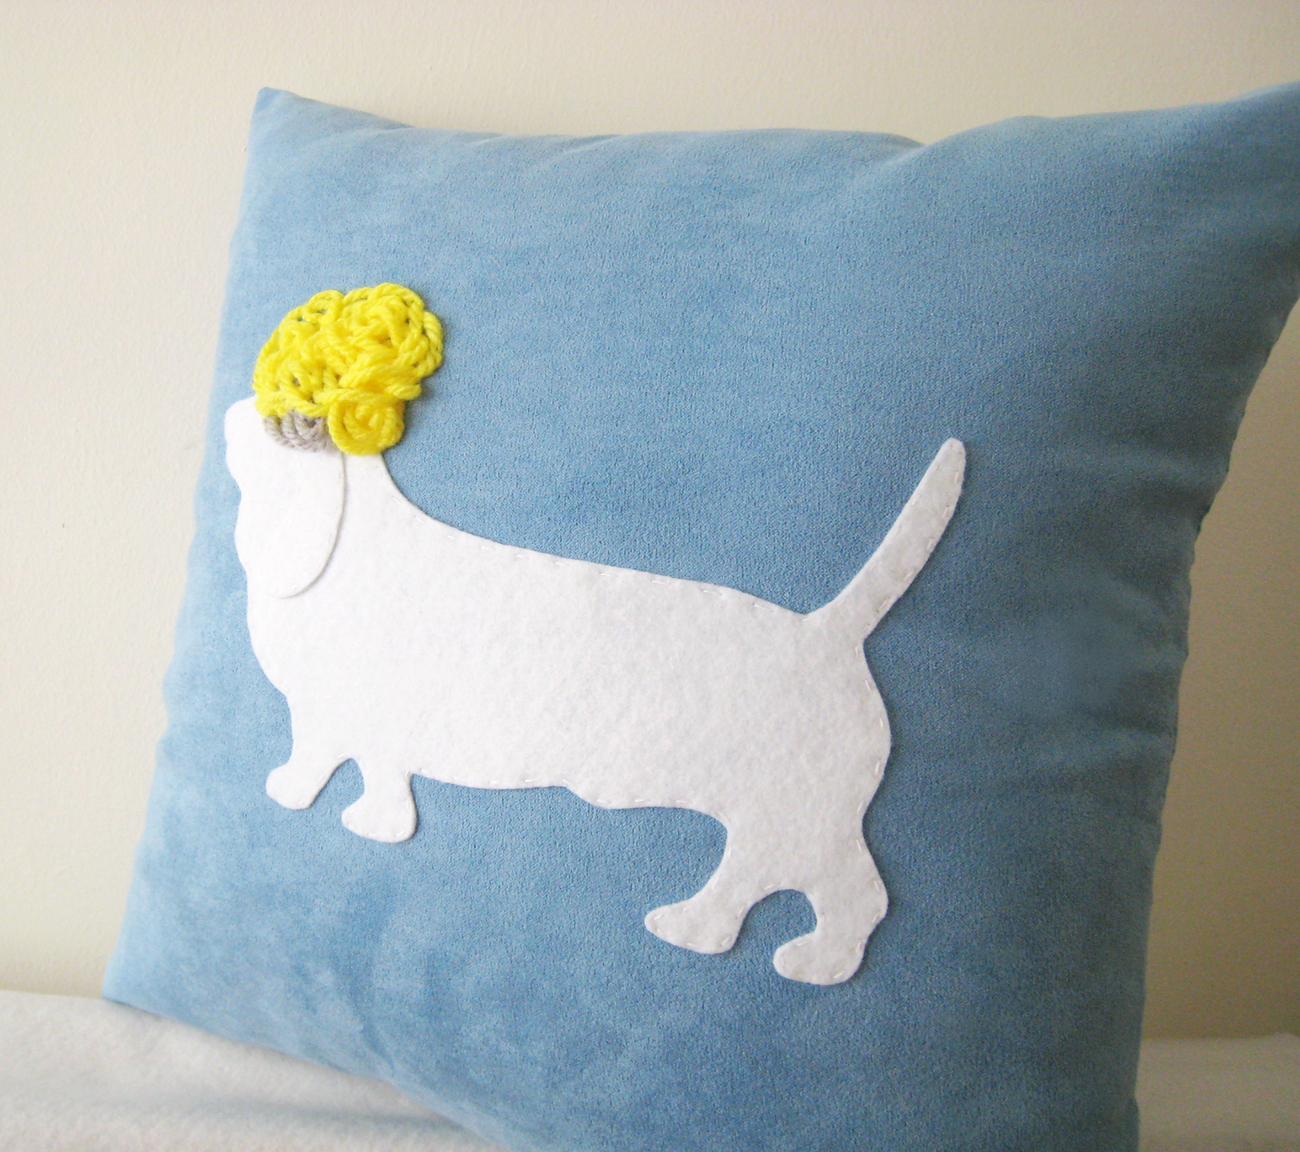 Dog Basset Hound With Funny Hair Blue And White Pillow Cover. Humor.Pets Lovers